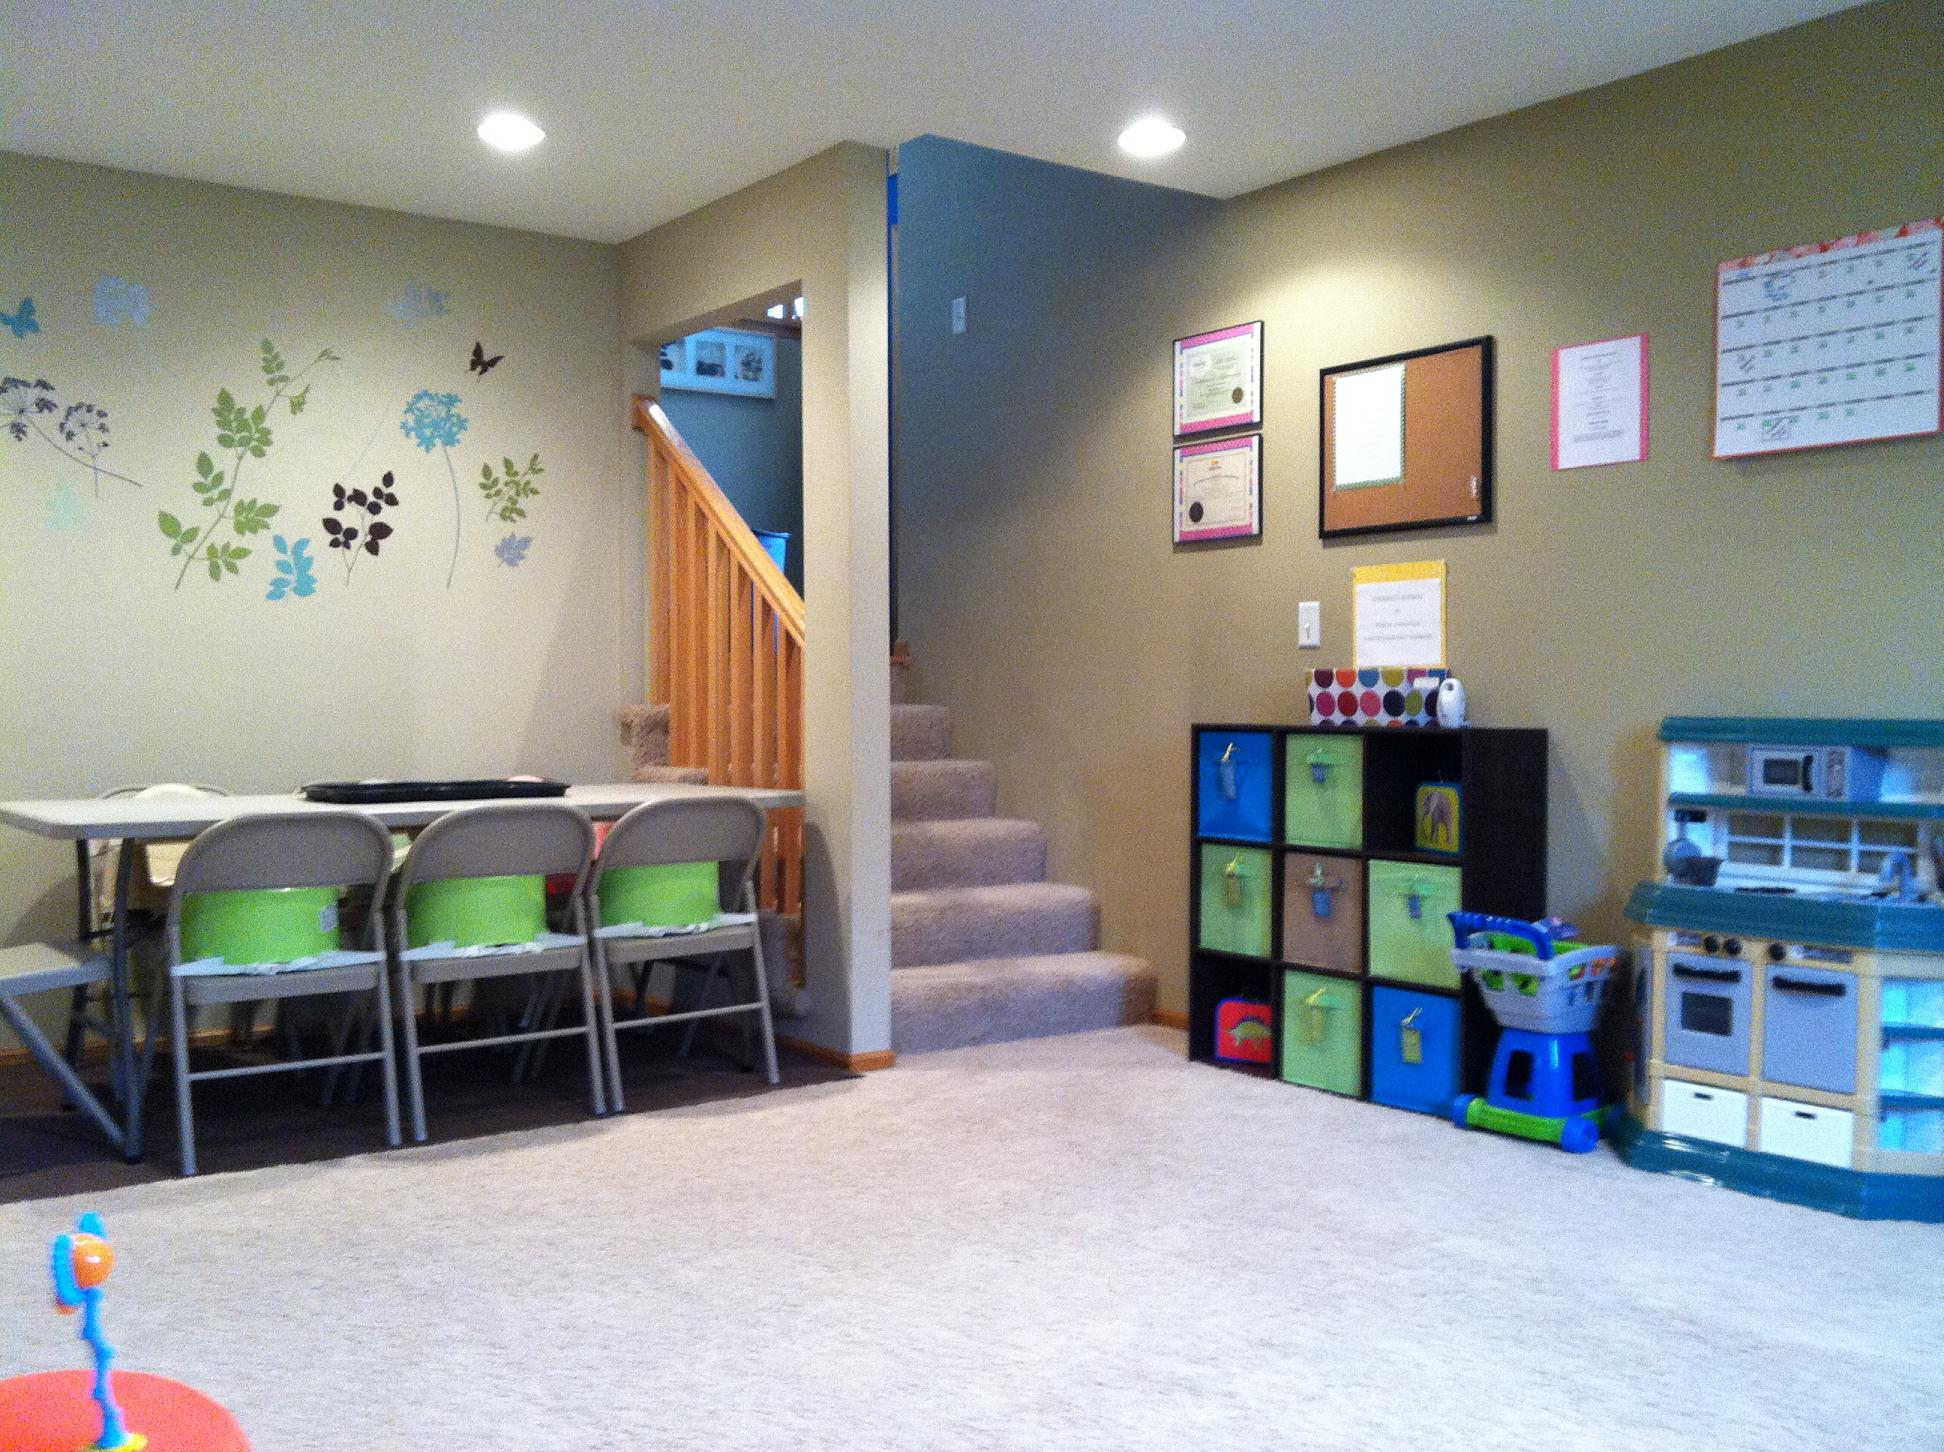 Home Classroom Design ~ Images about home daycare ideas on pinterest